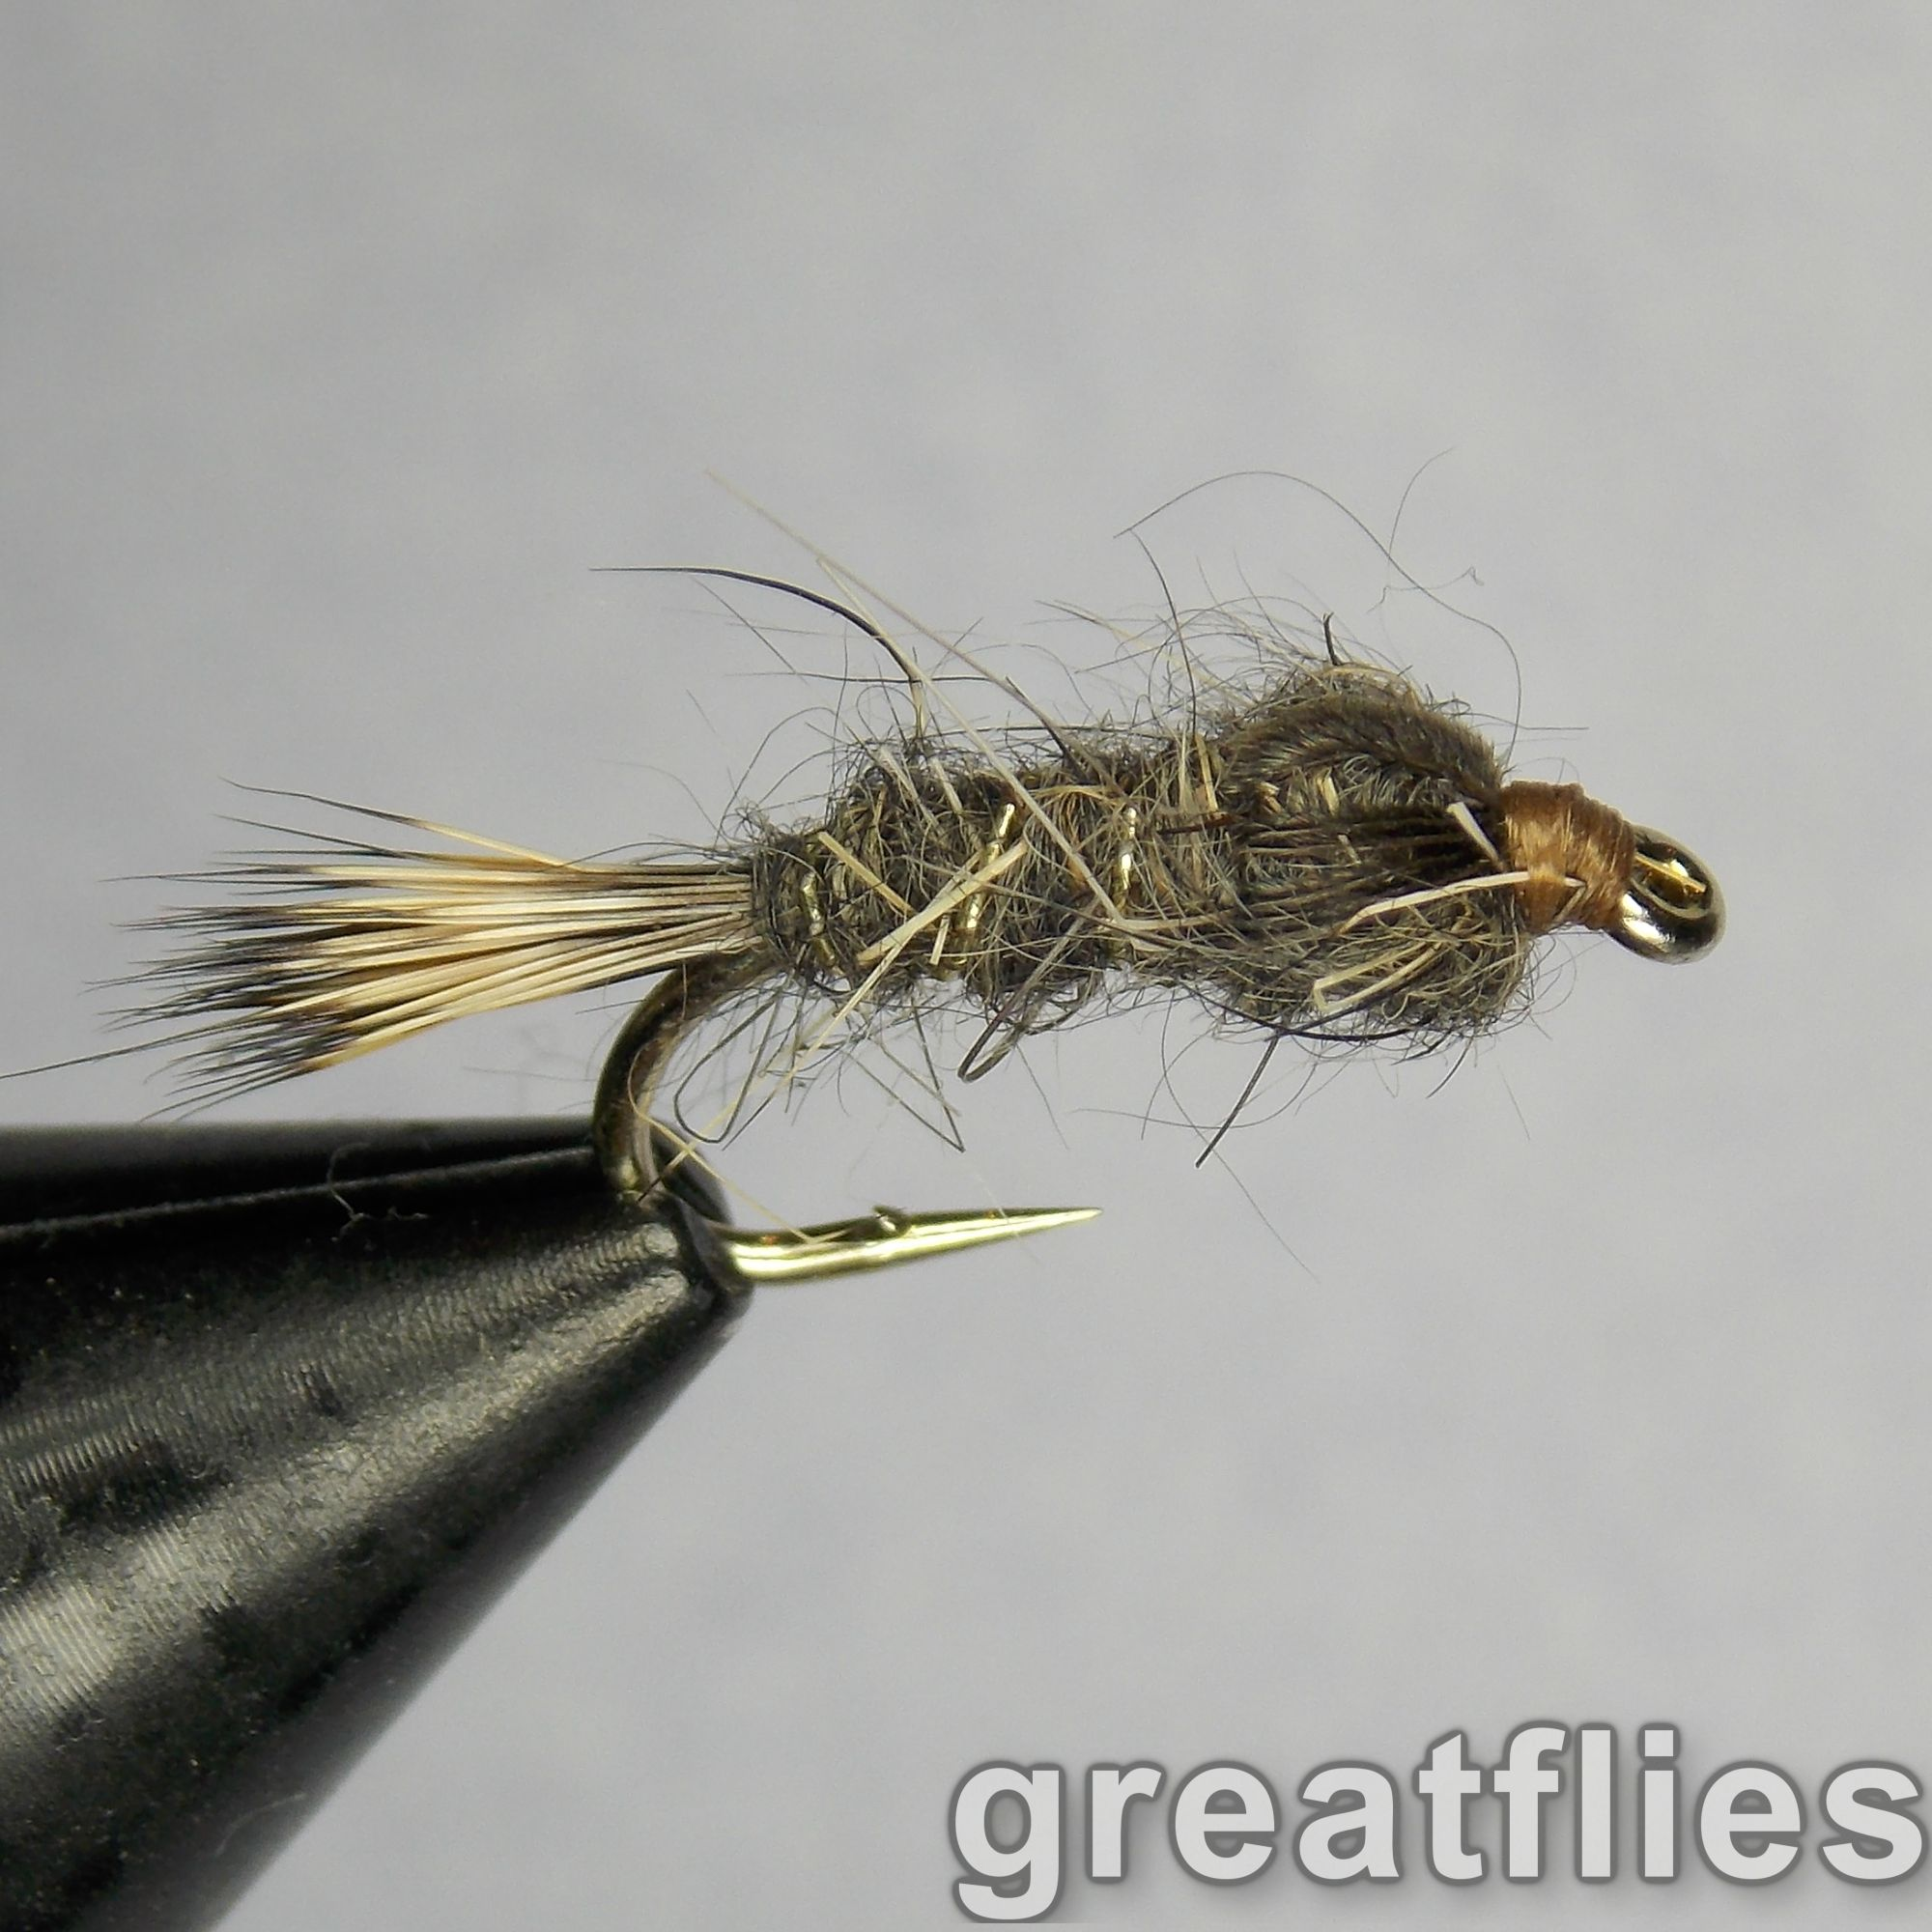 12QTY Gold Ribbed Hare Fly Fishing Flies size 14